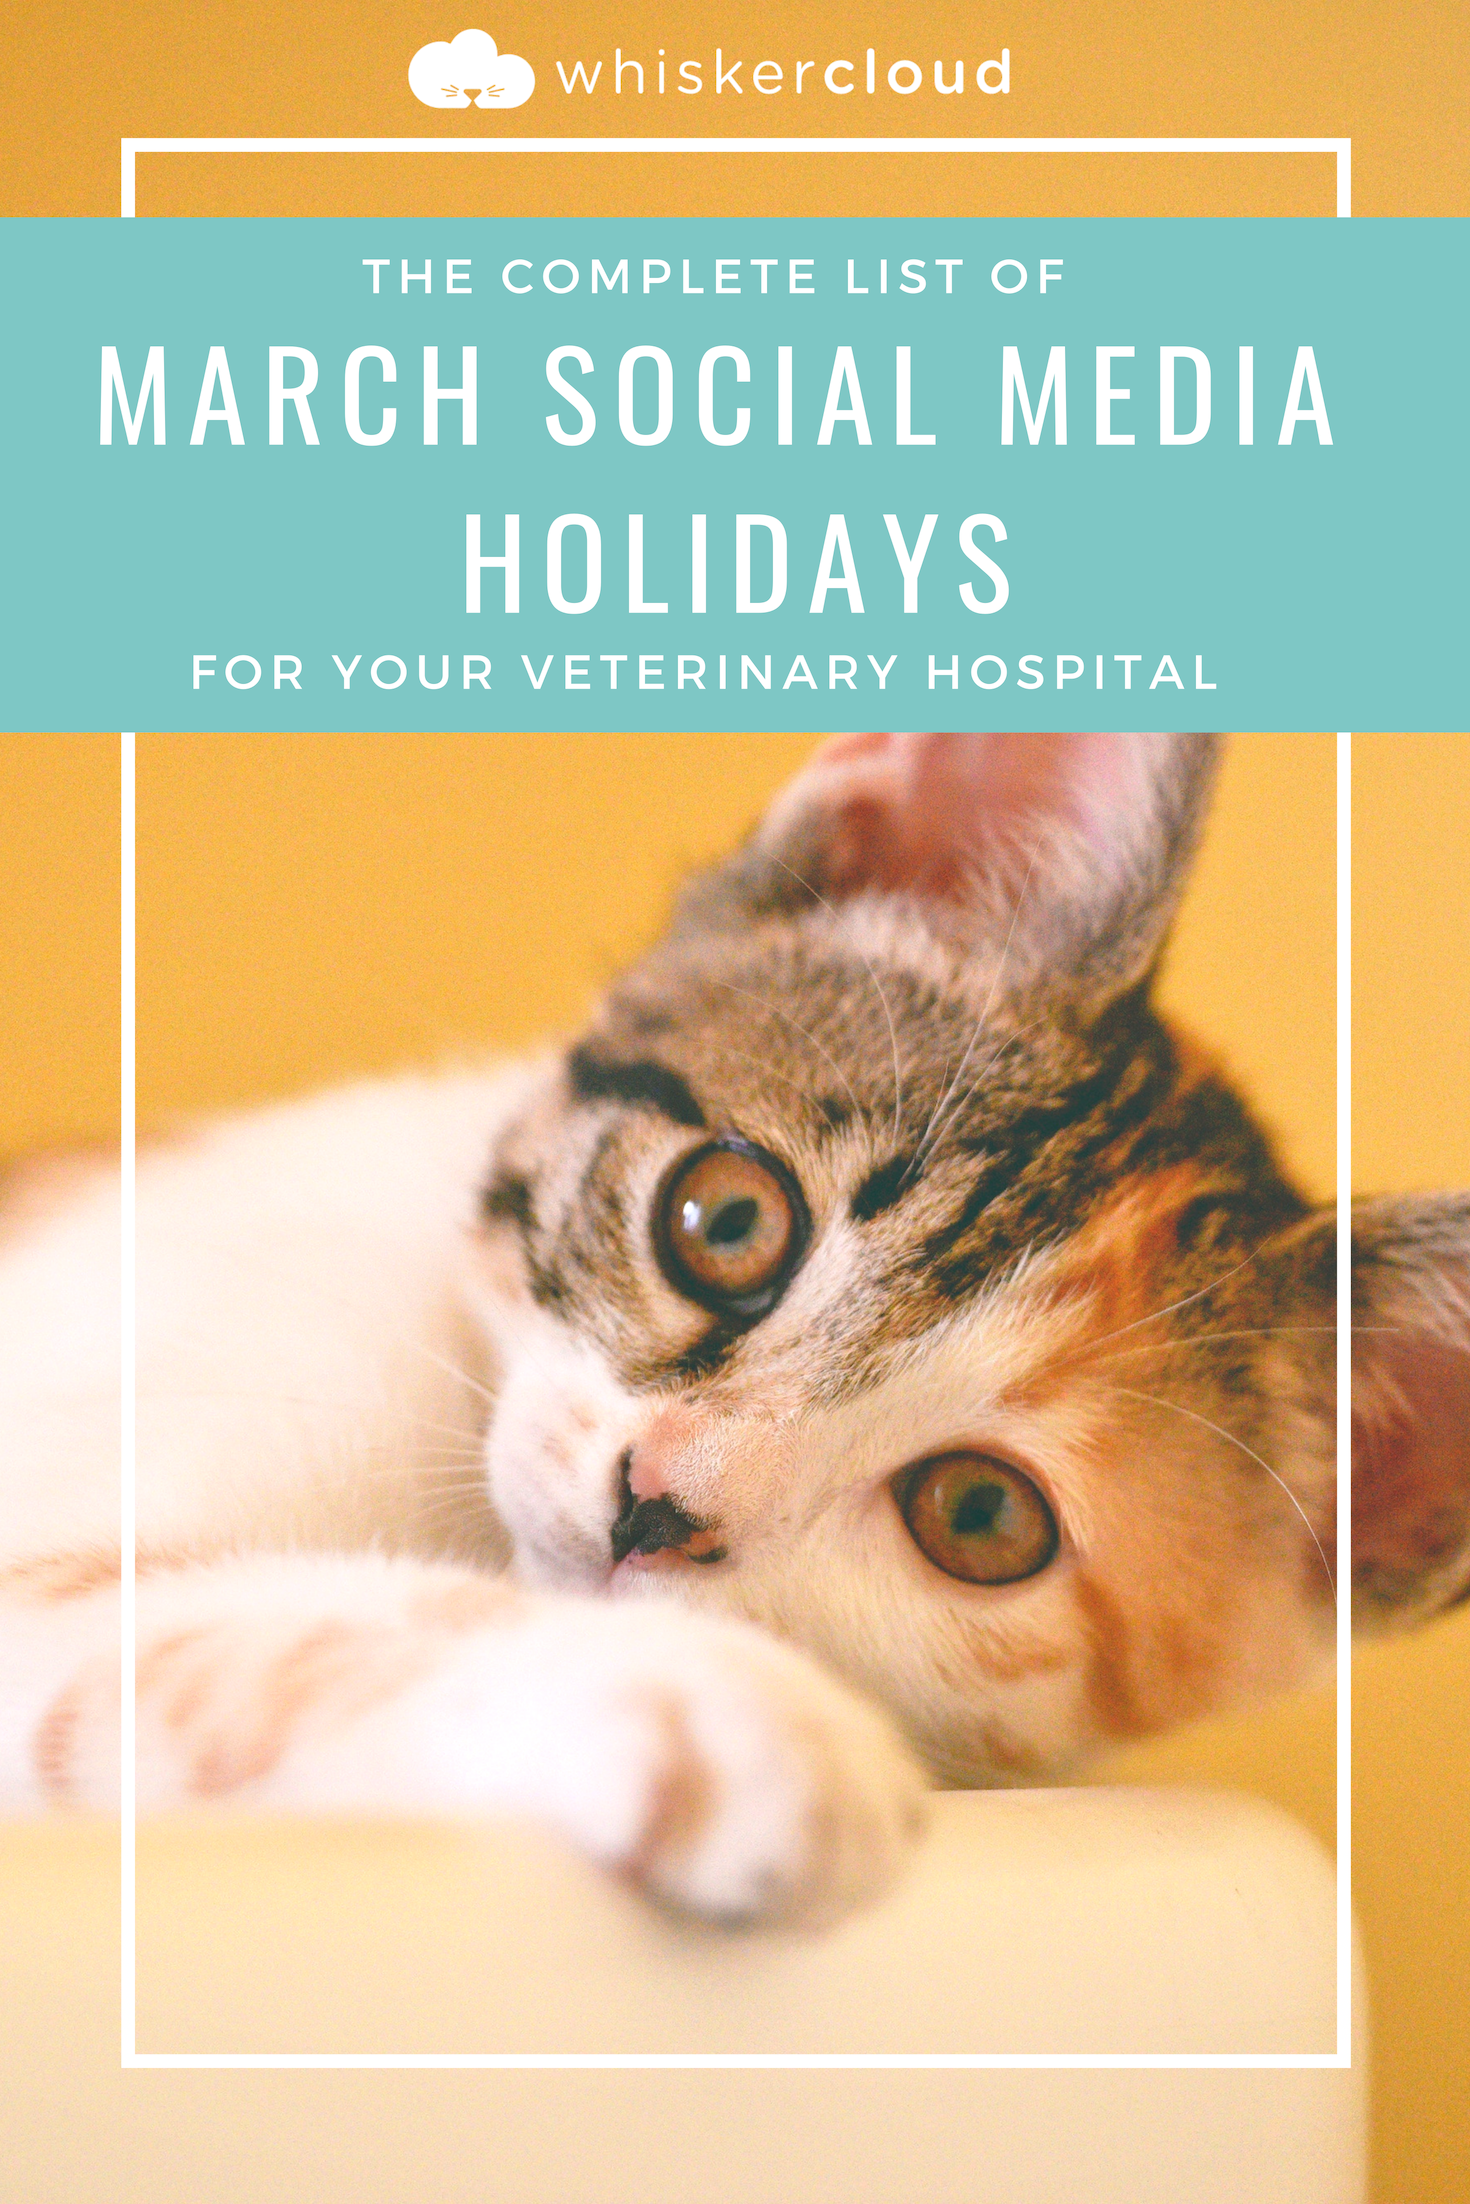 Complete List of Social Media Holidays For Veterinary